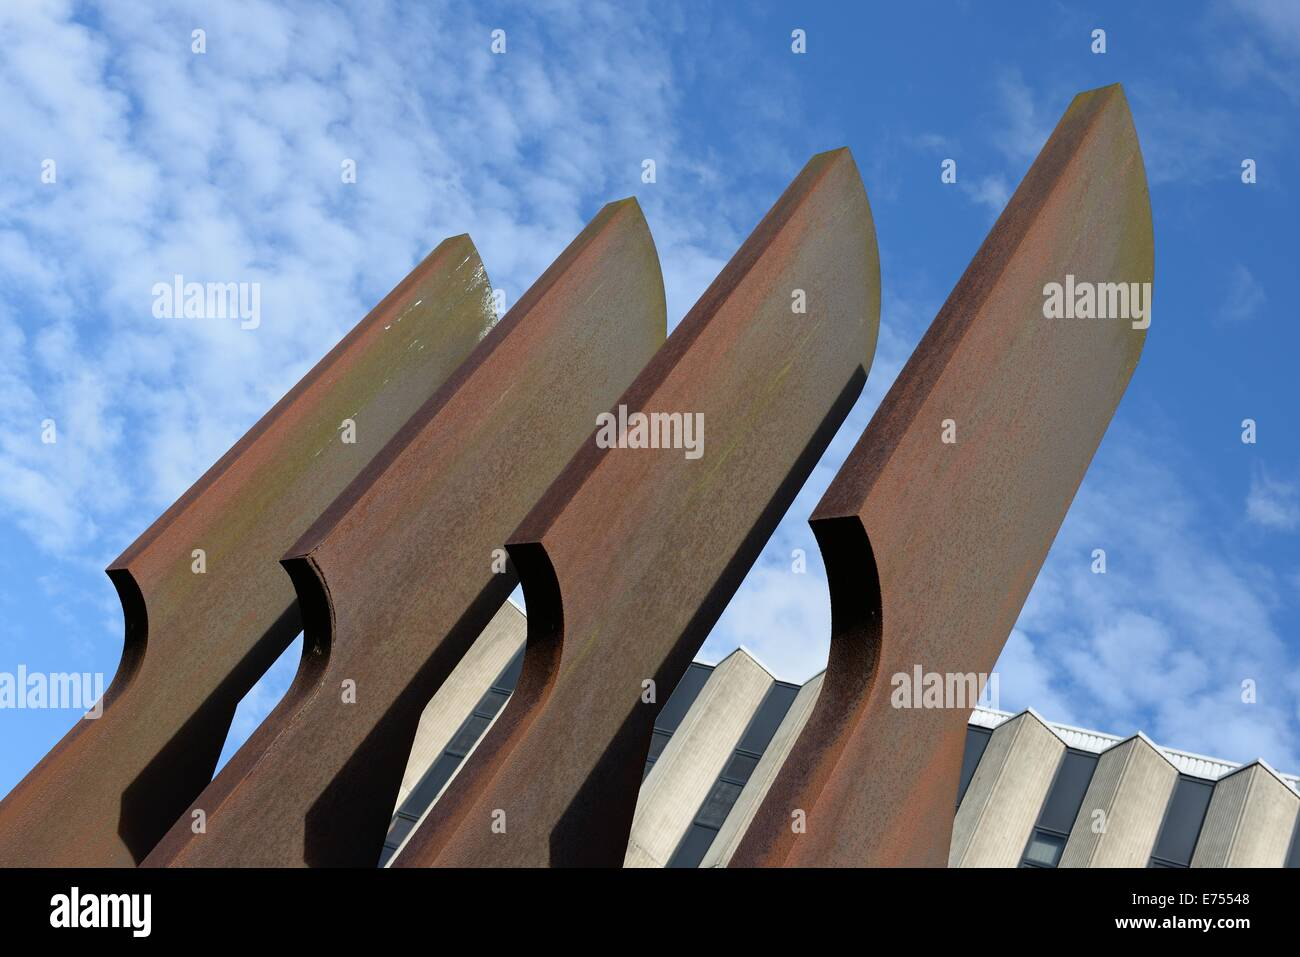 The sculpture at Strathclyde University called 'Callanish' (Steel Henge) by Gerald Laing - Stock Image